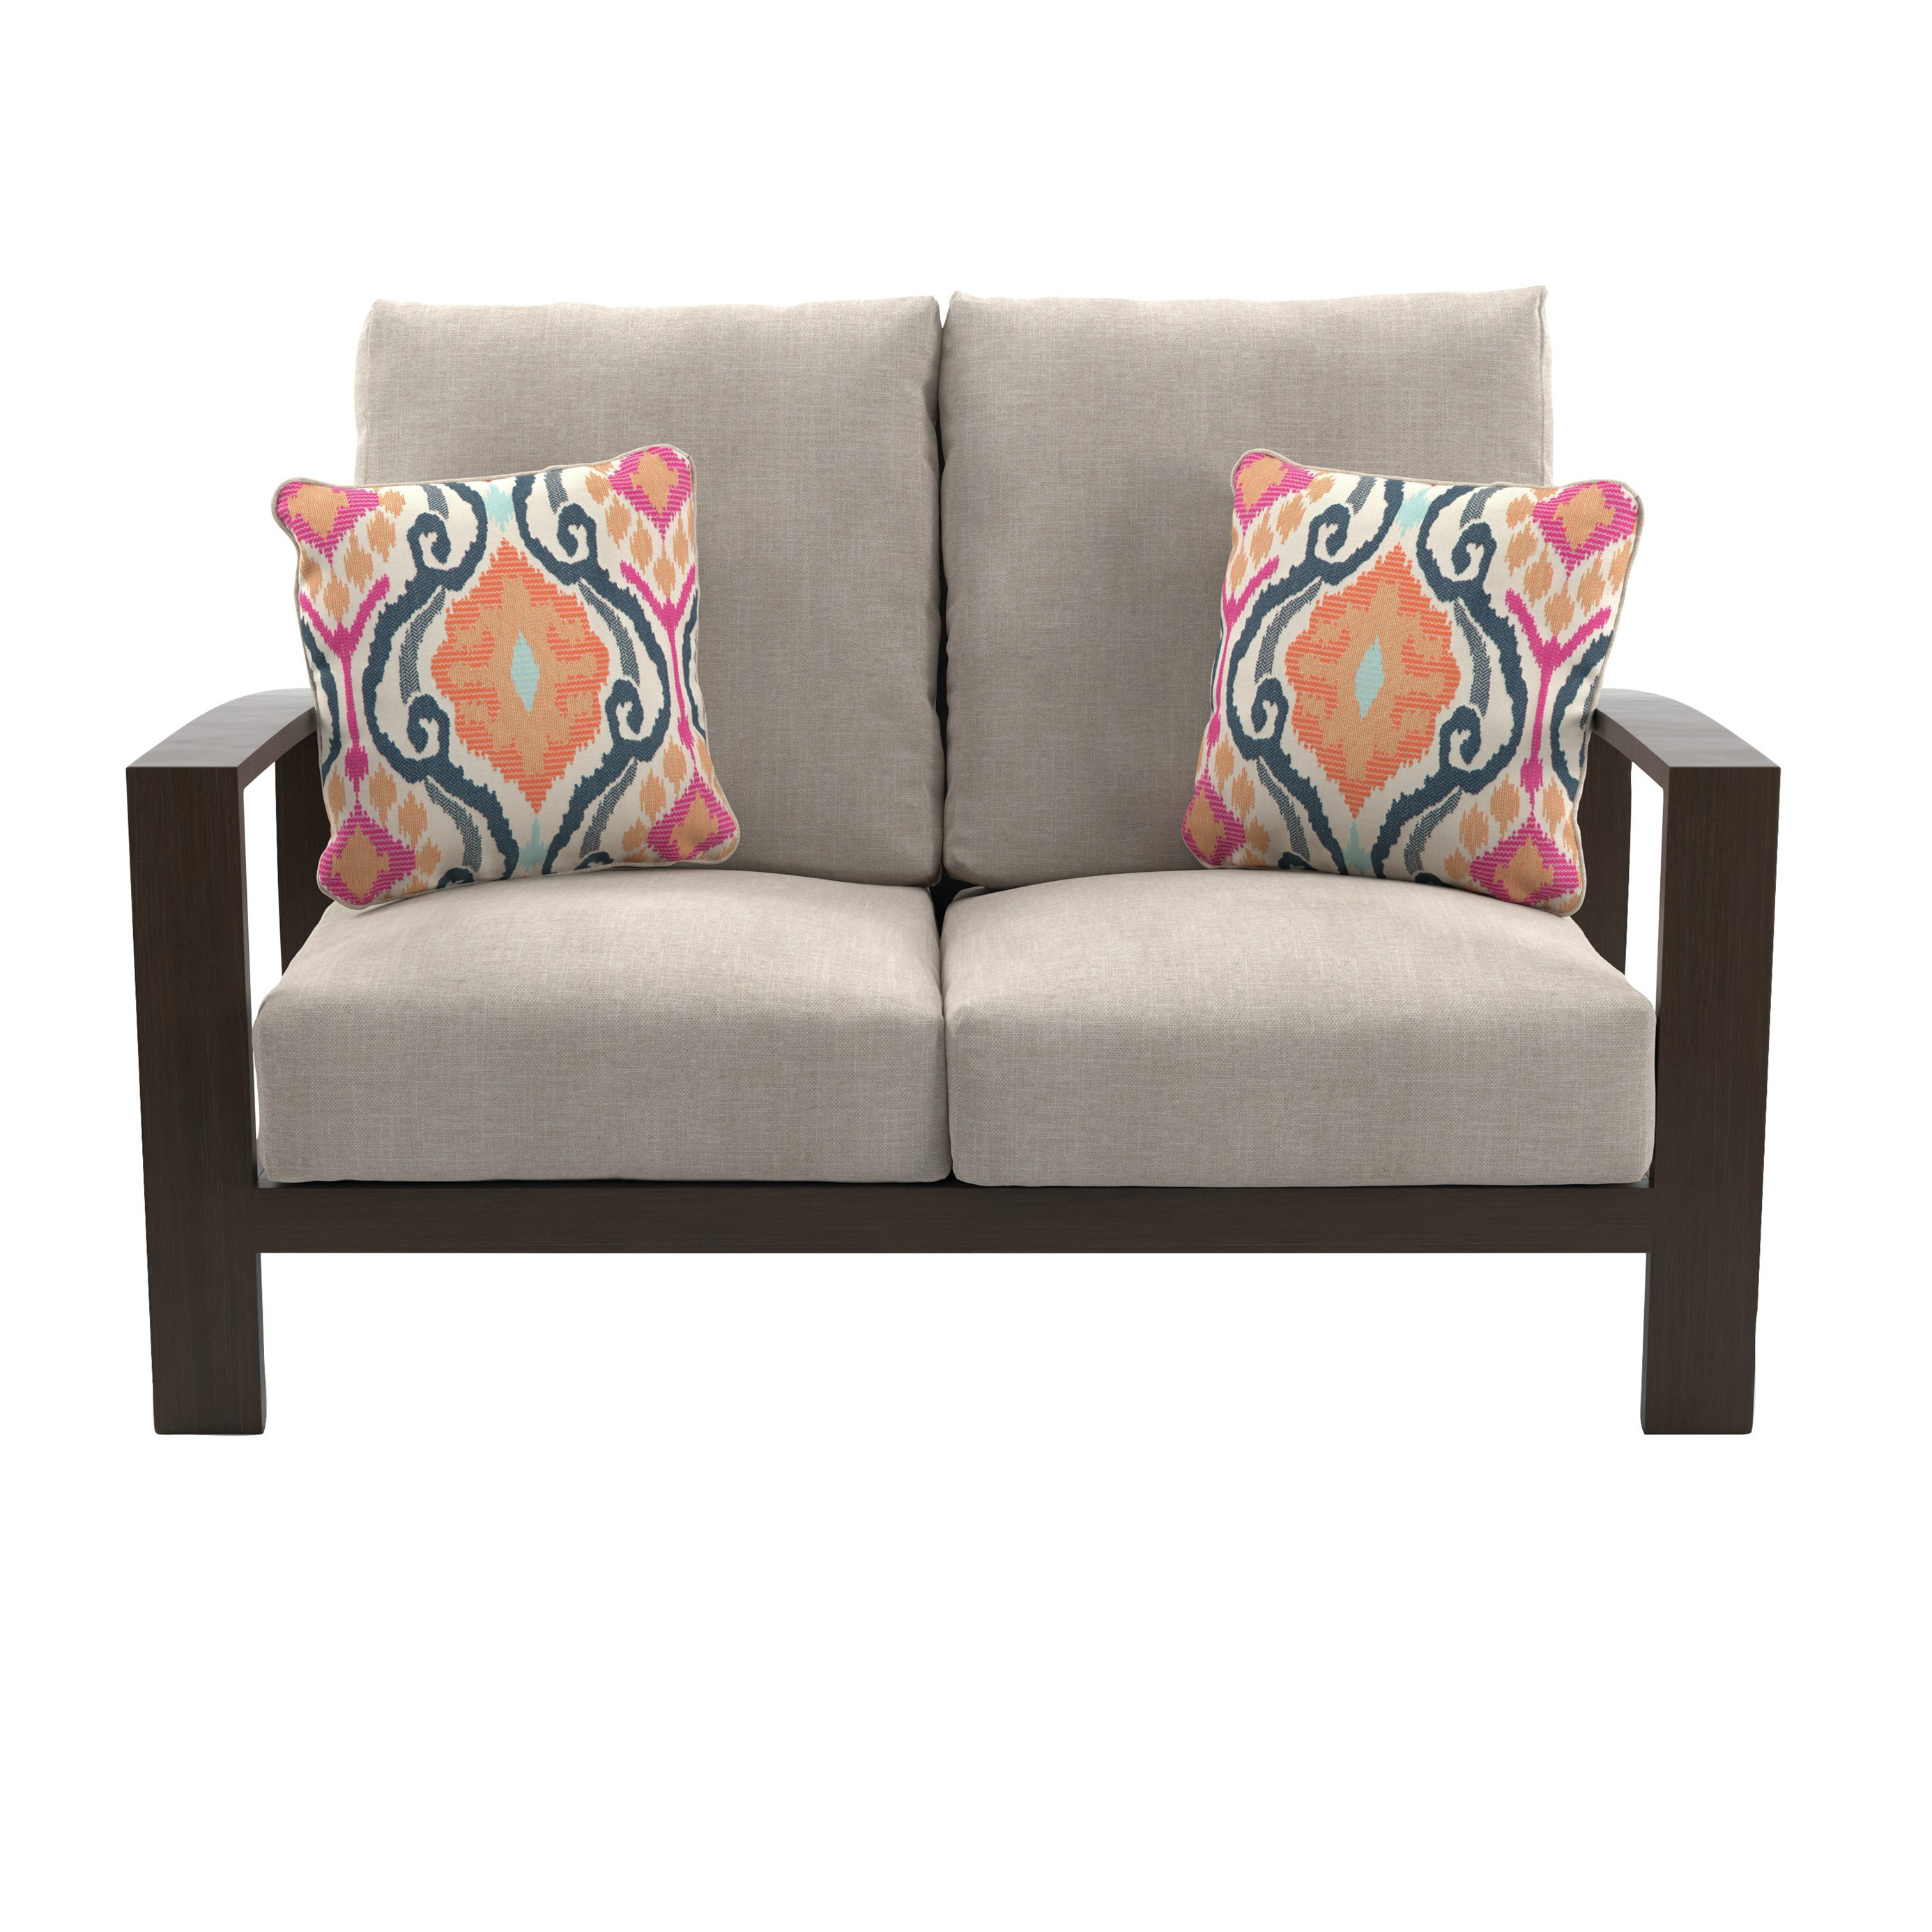 Jay Loveseat With Cushions Pertaining To Recent Bristol Loveseats With Cushions (View 7 of 20)